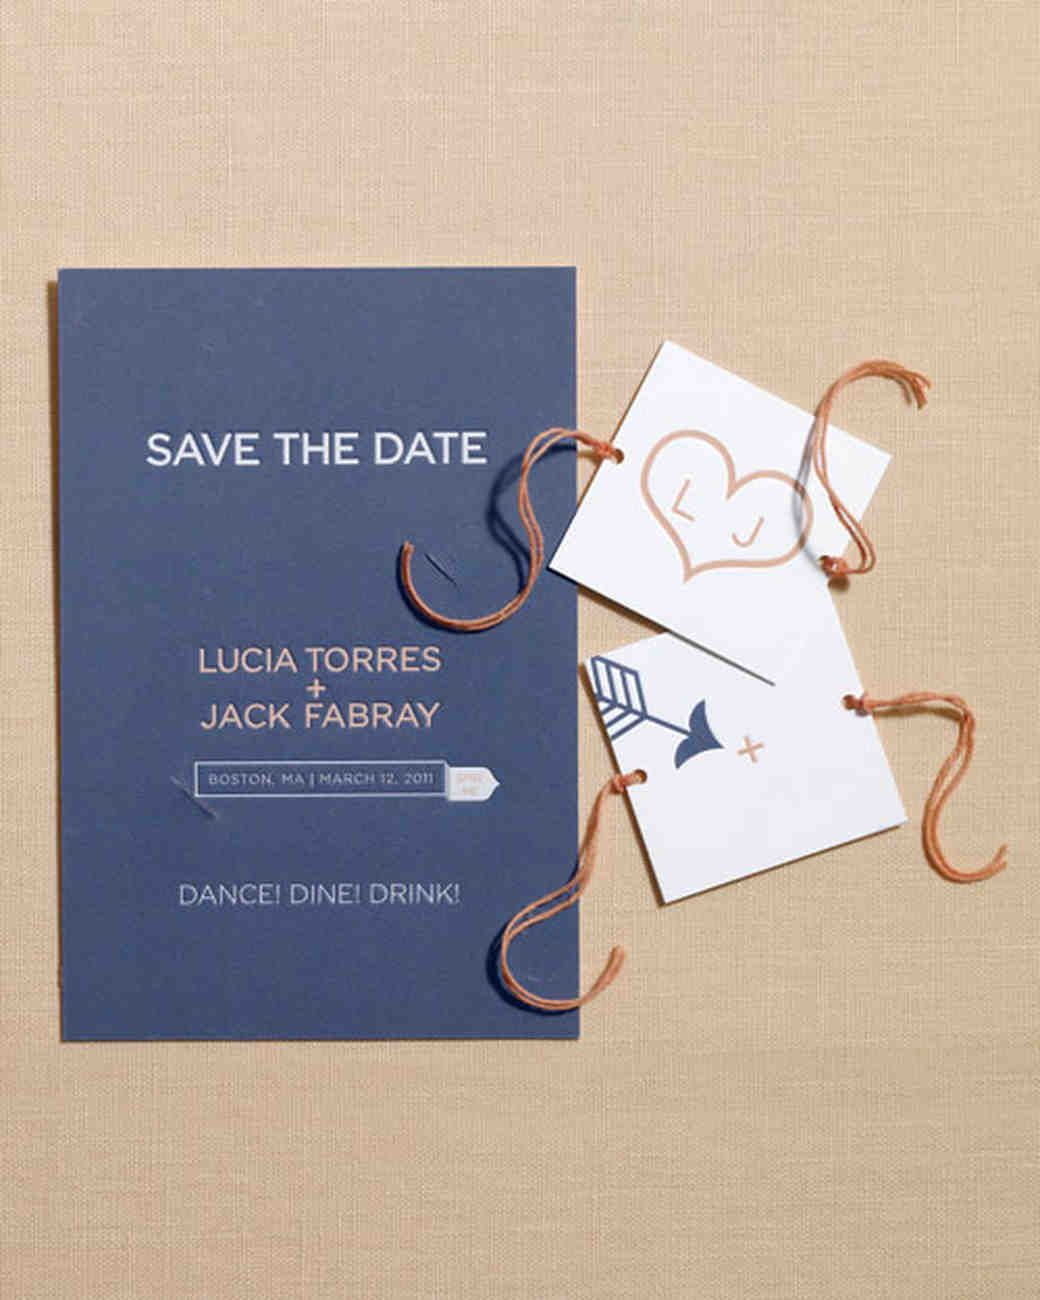 Save the date clip art and templates chella beauty weddings save the date clip art and templates junglespirit Gallery